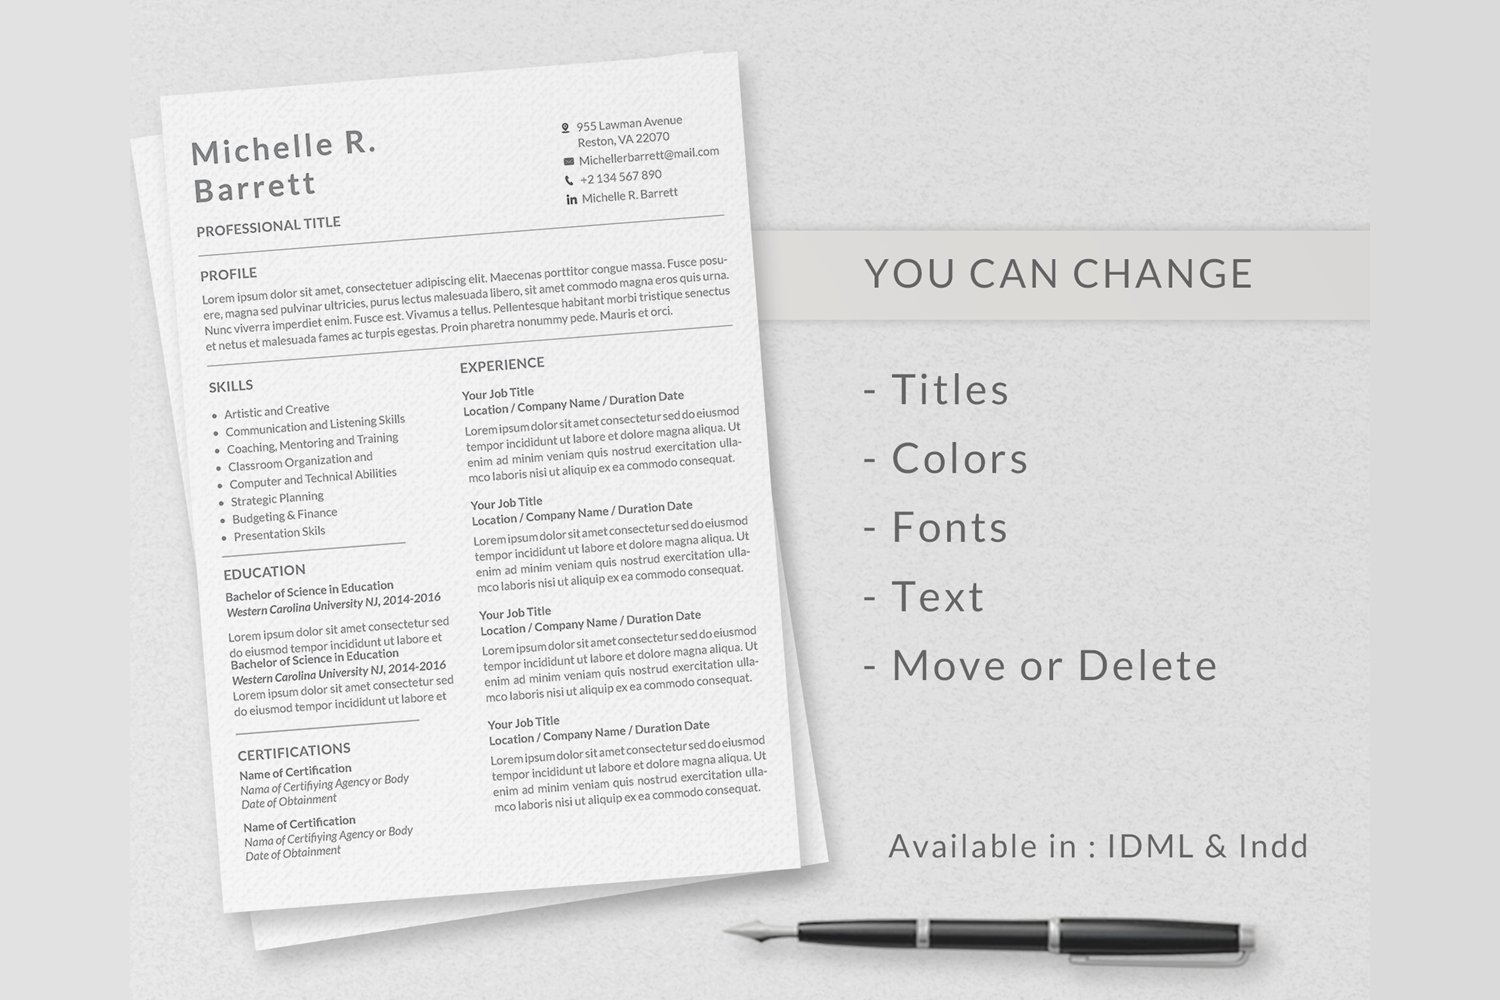 Professional Resume Templates example image 5